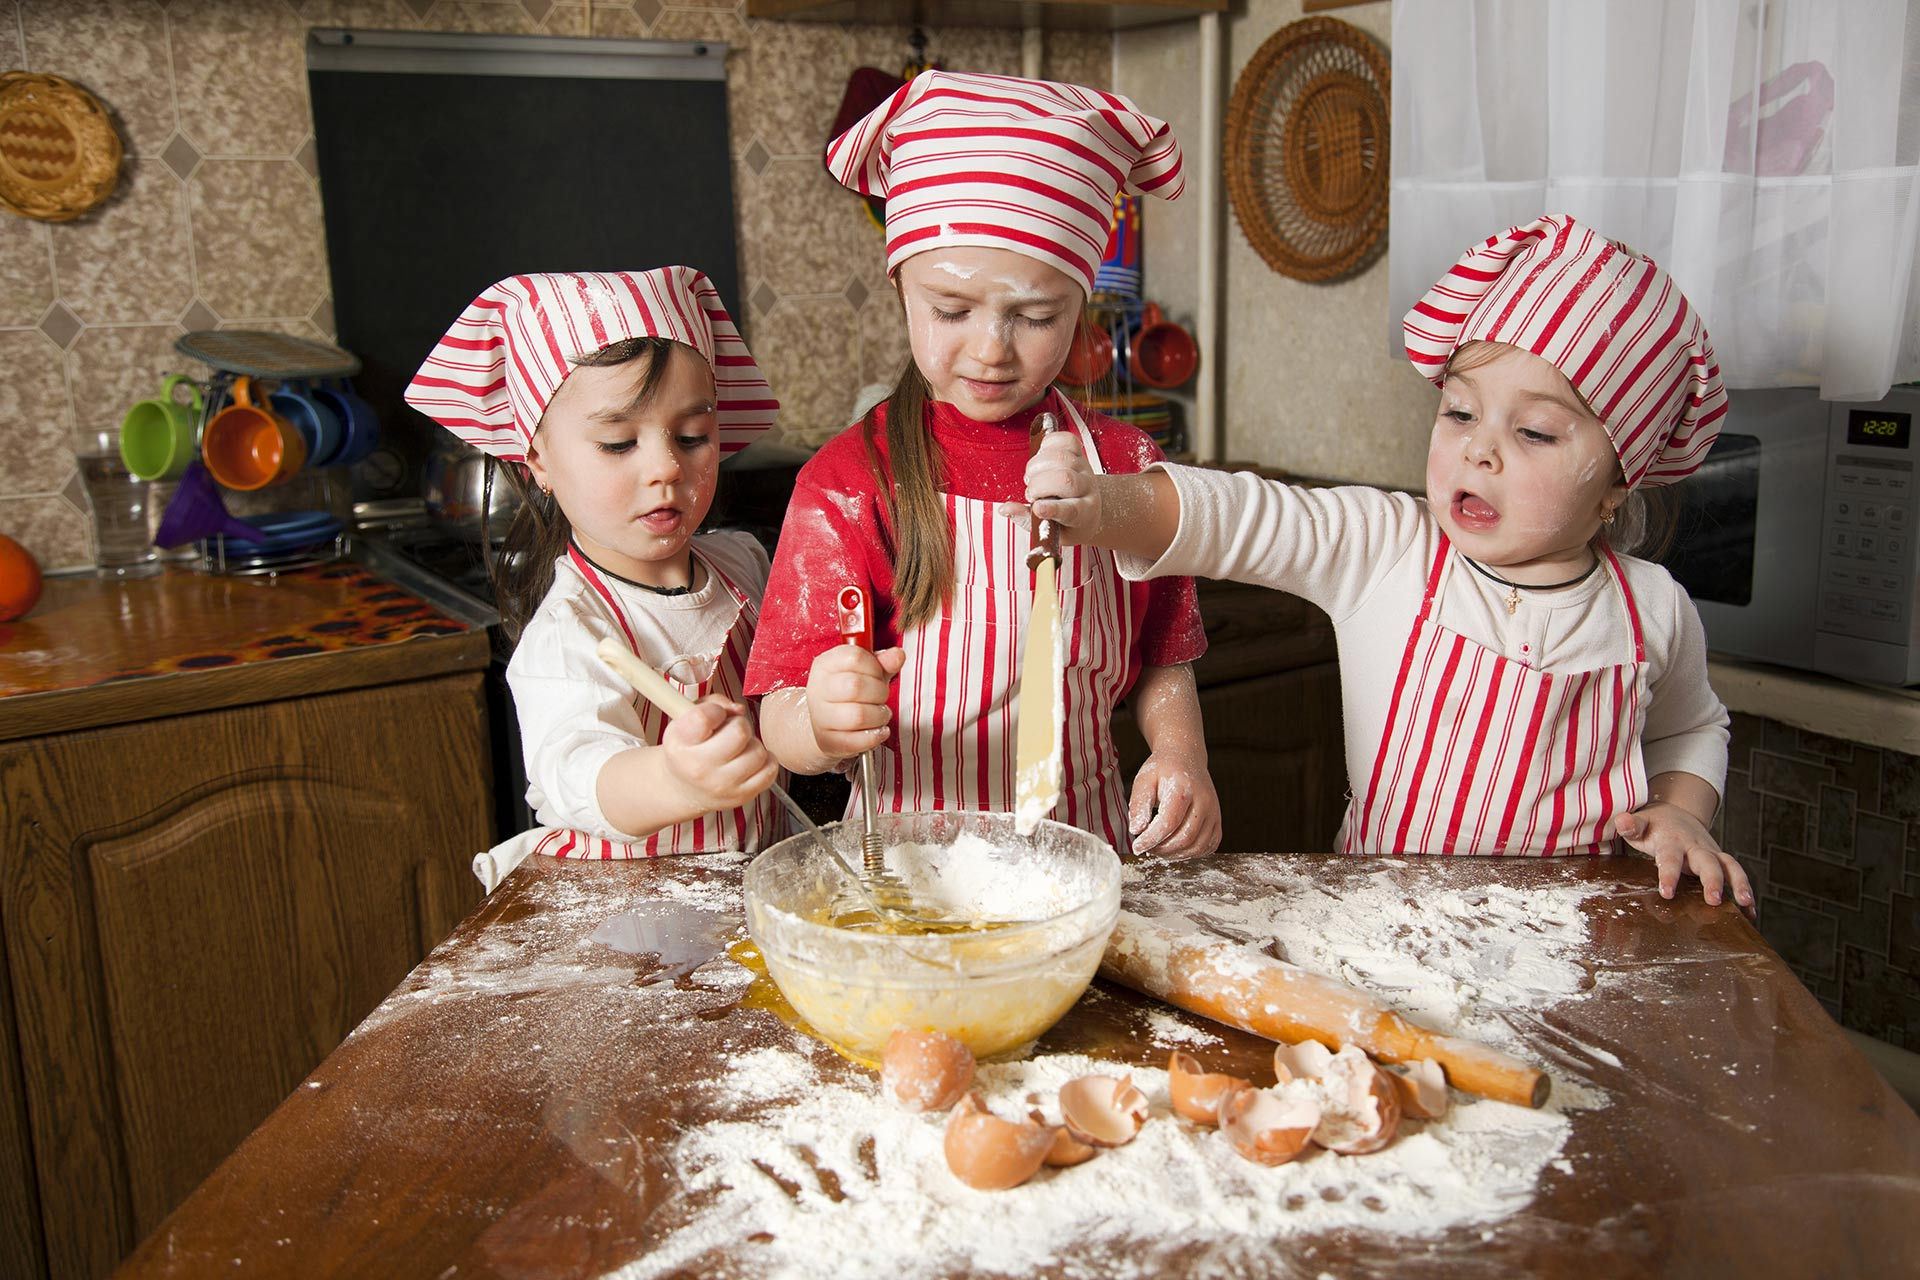 Sisters making bread together.